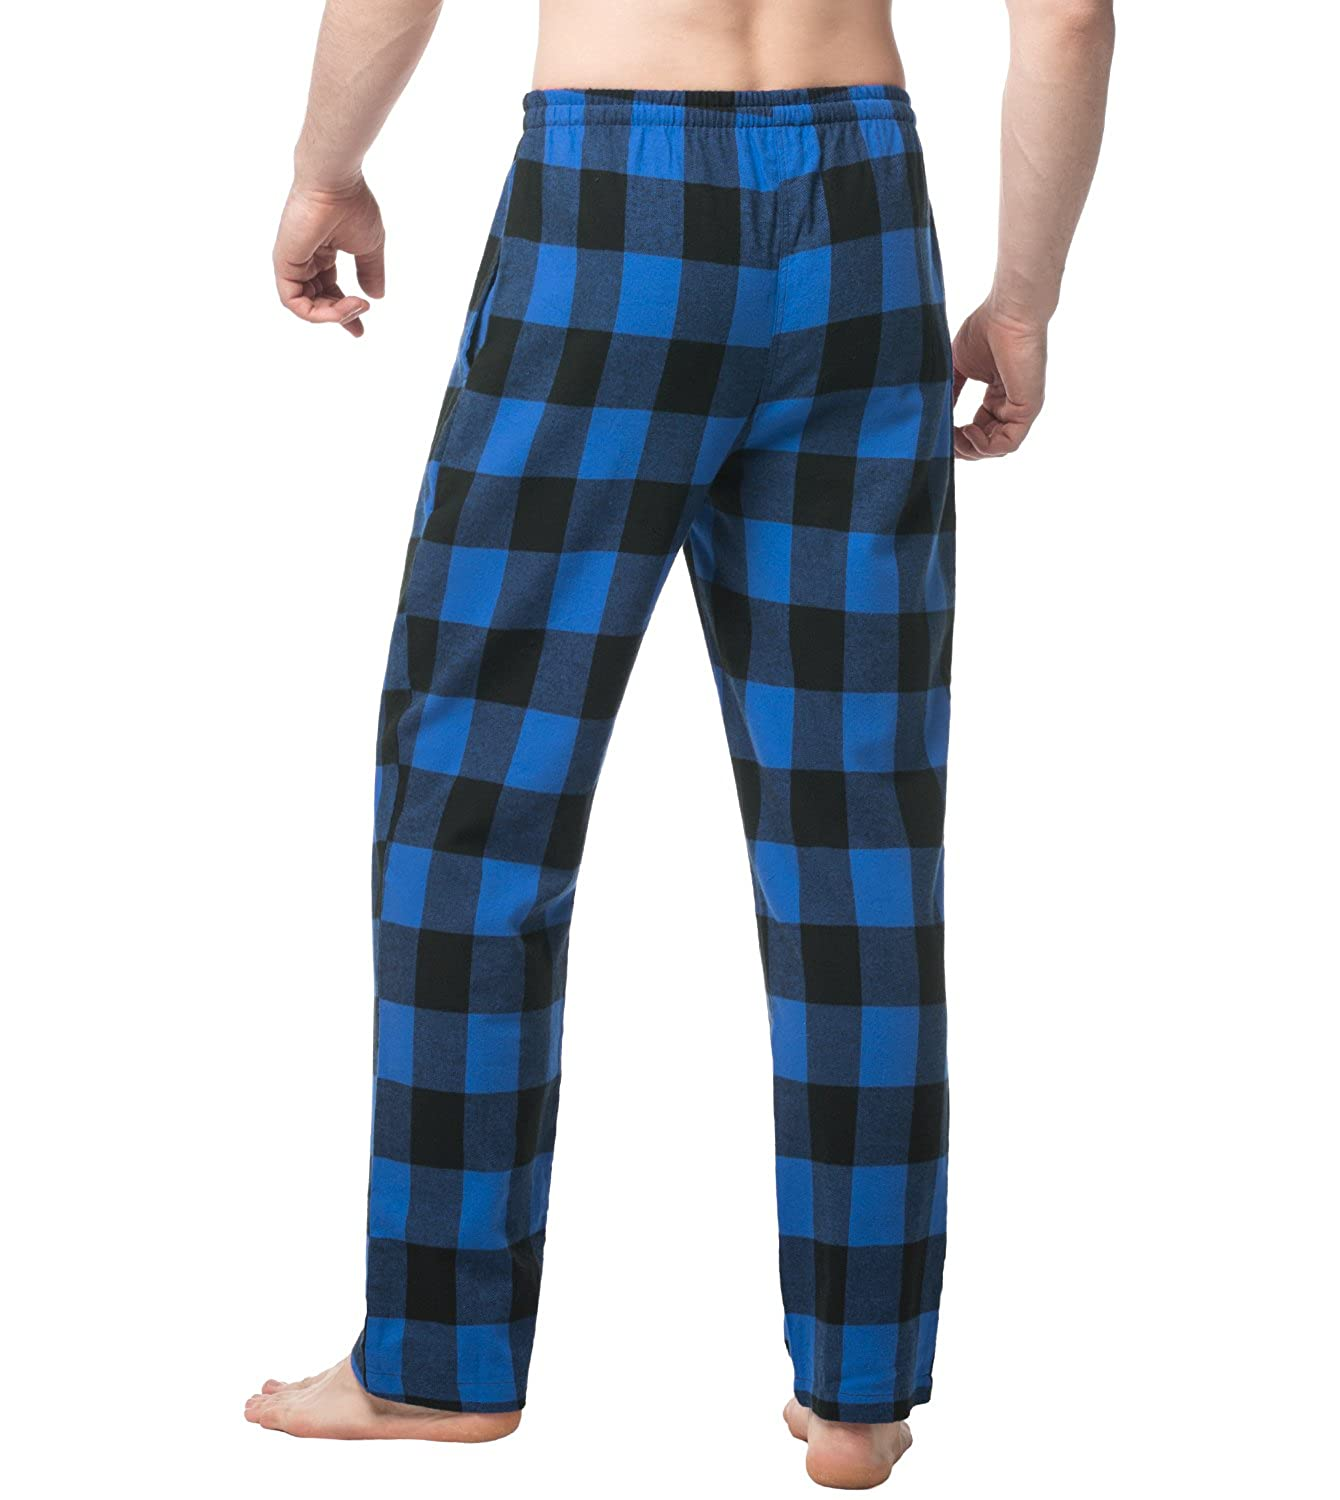 72382b18e69 LAPASA Men s 100% Cotton Woven Flannel Pajama Lounge Sleep Pants Plaid PJ  Bottoms w Pockets and Drawstring M39 at Amazon Men s Clothing store